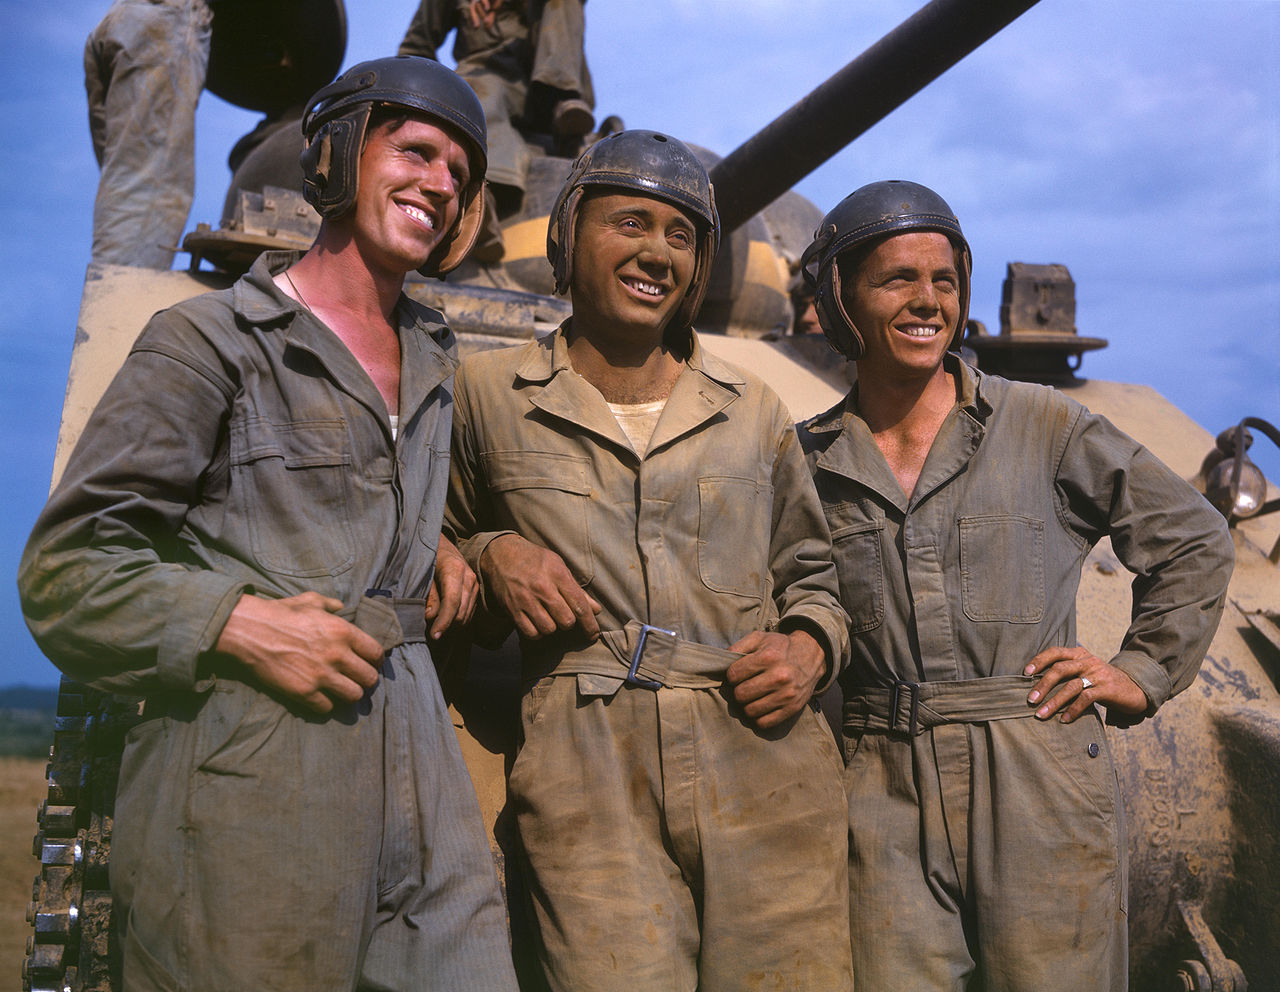 M-4 tank crews of the United States, Ft. Knox, KY, 1942